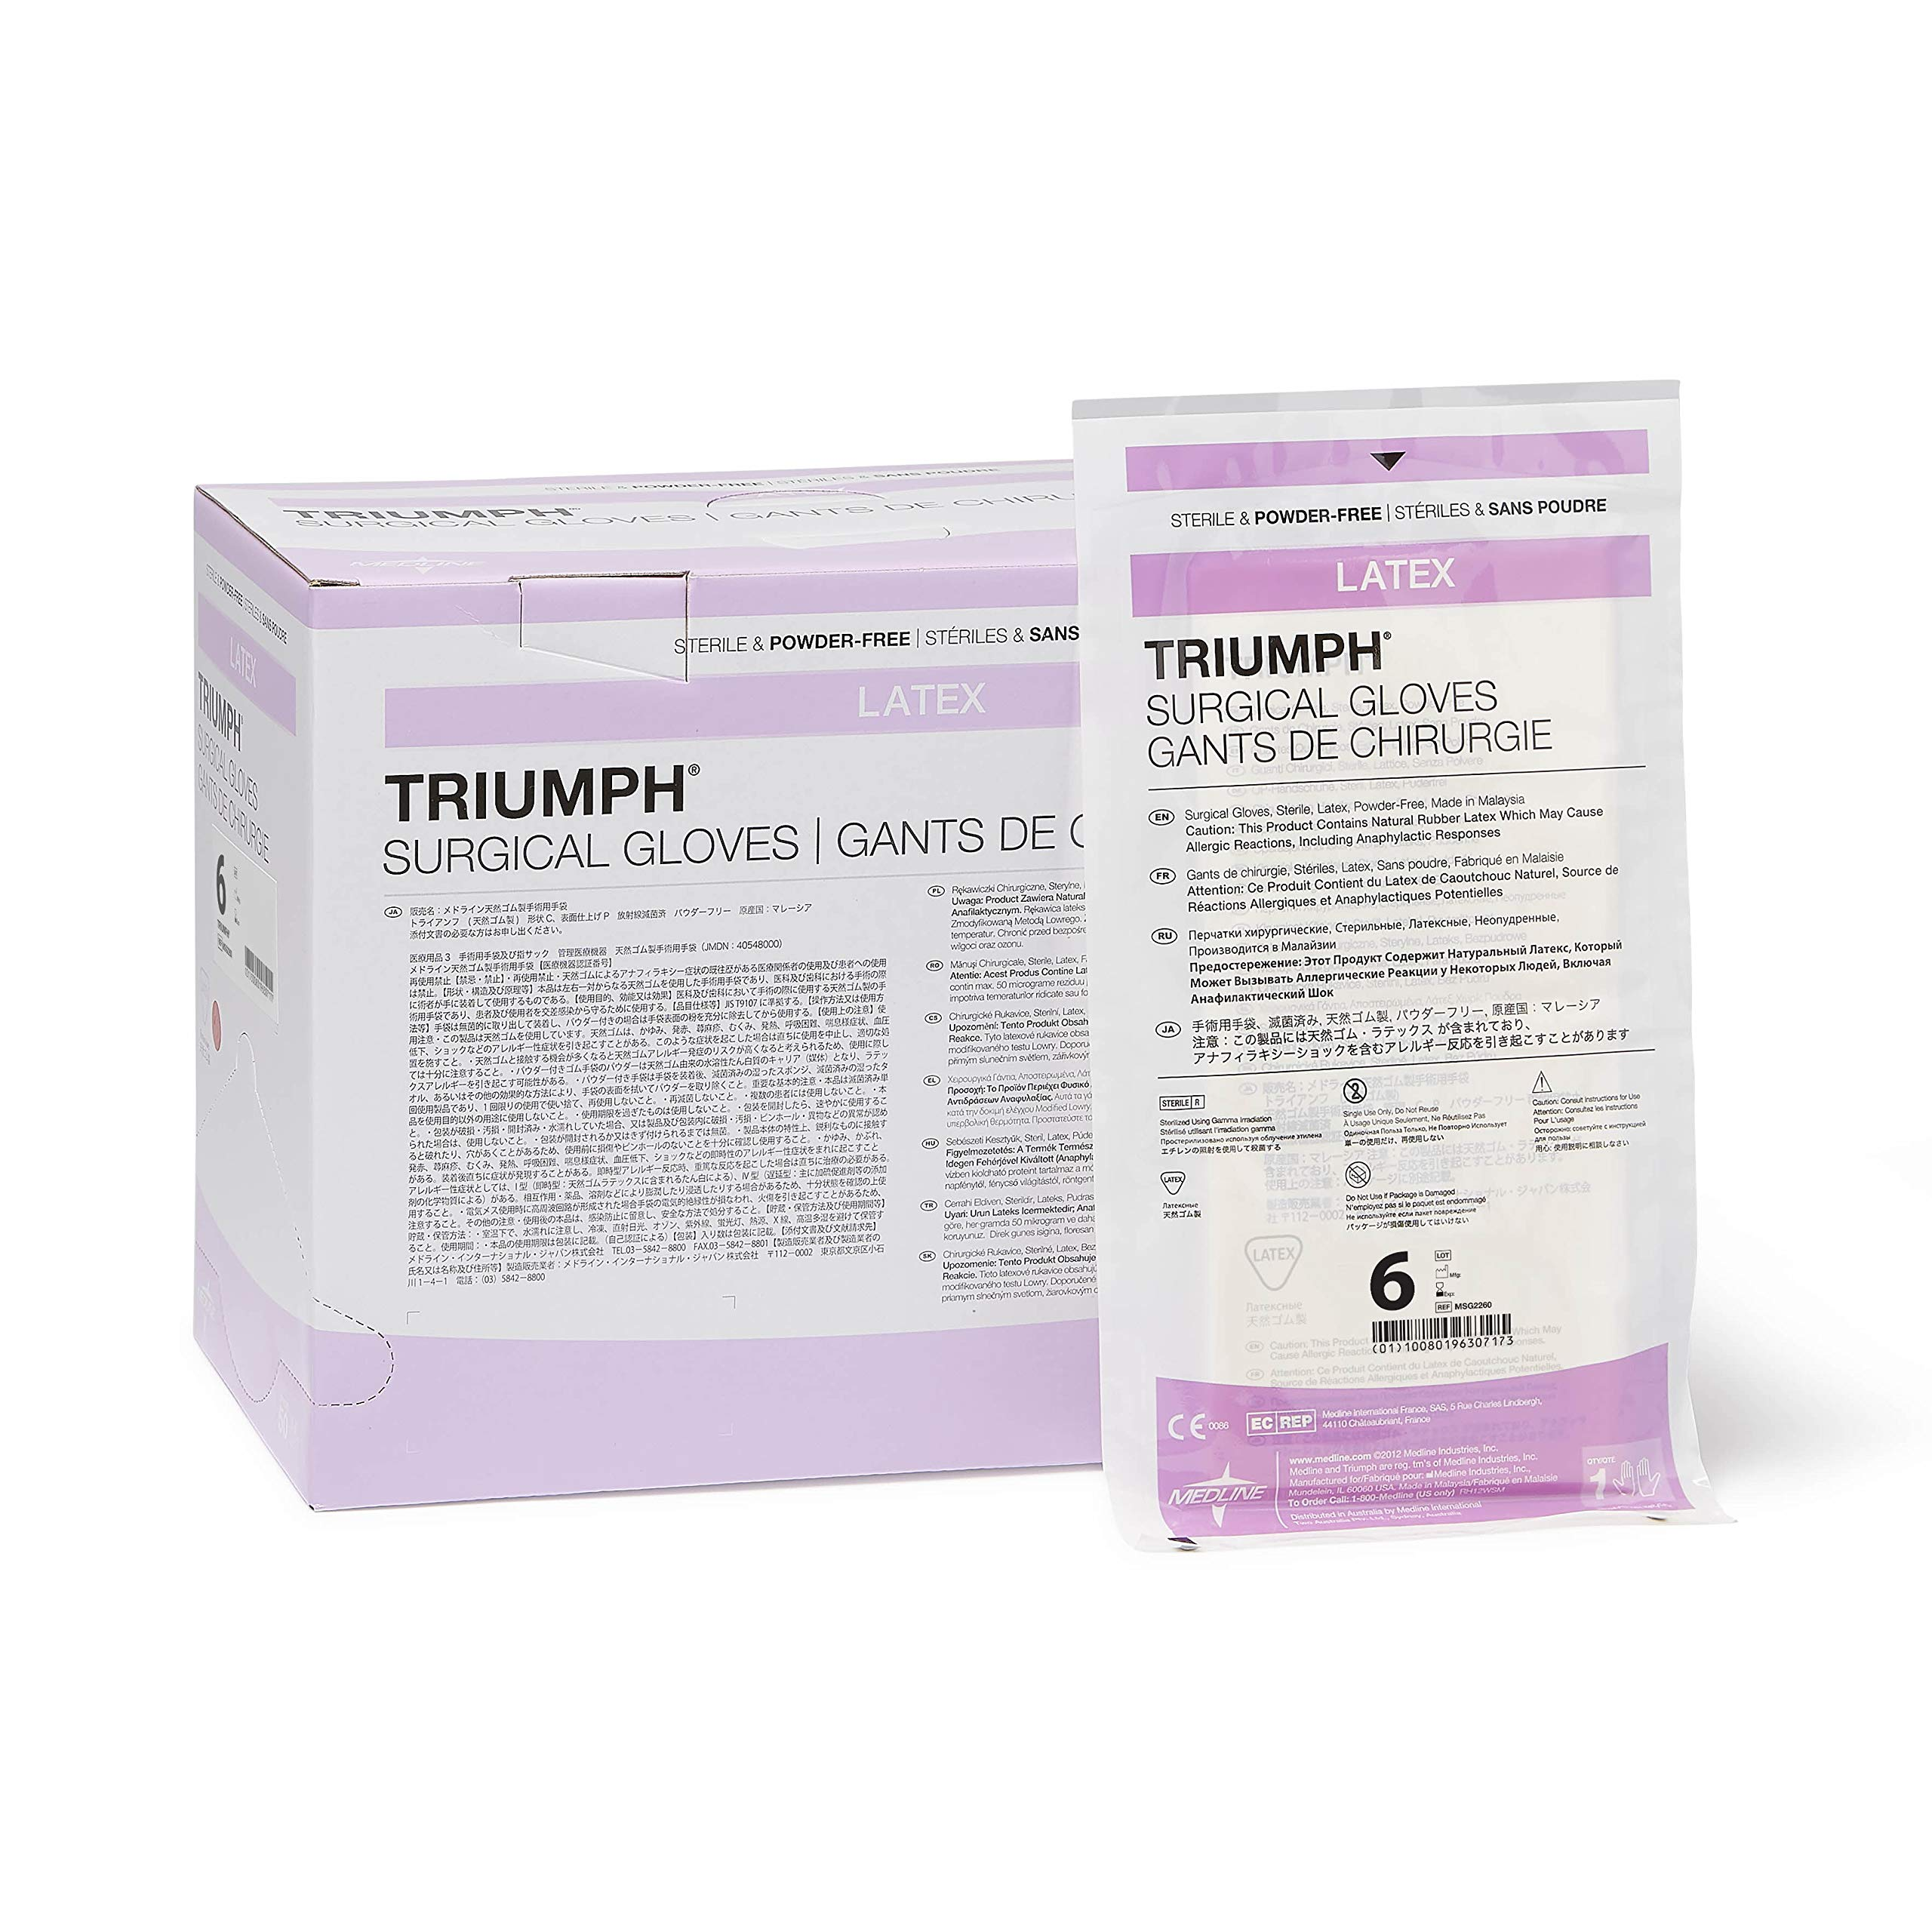 Medline MSG2260 Triumph Sterile Powder-Free Latex Surgical Glove, Size 6, White (Pack of 200)